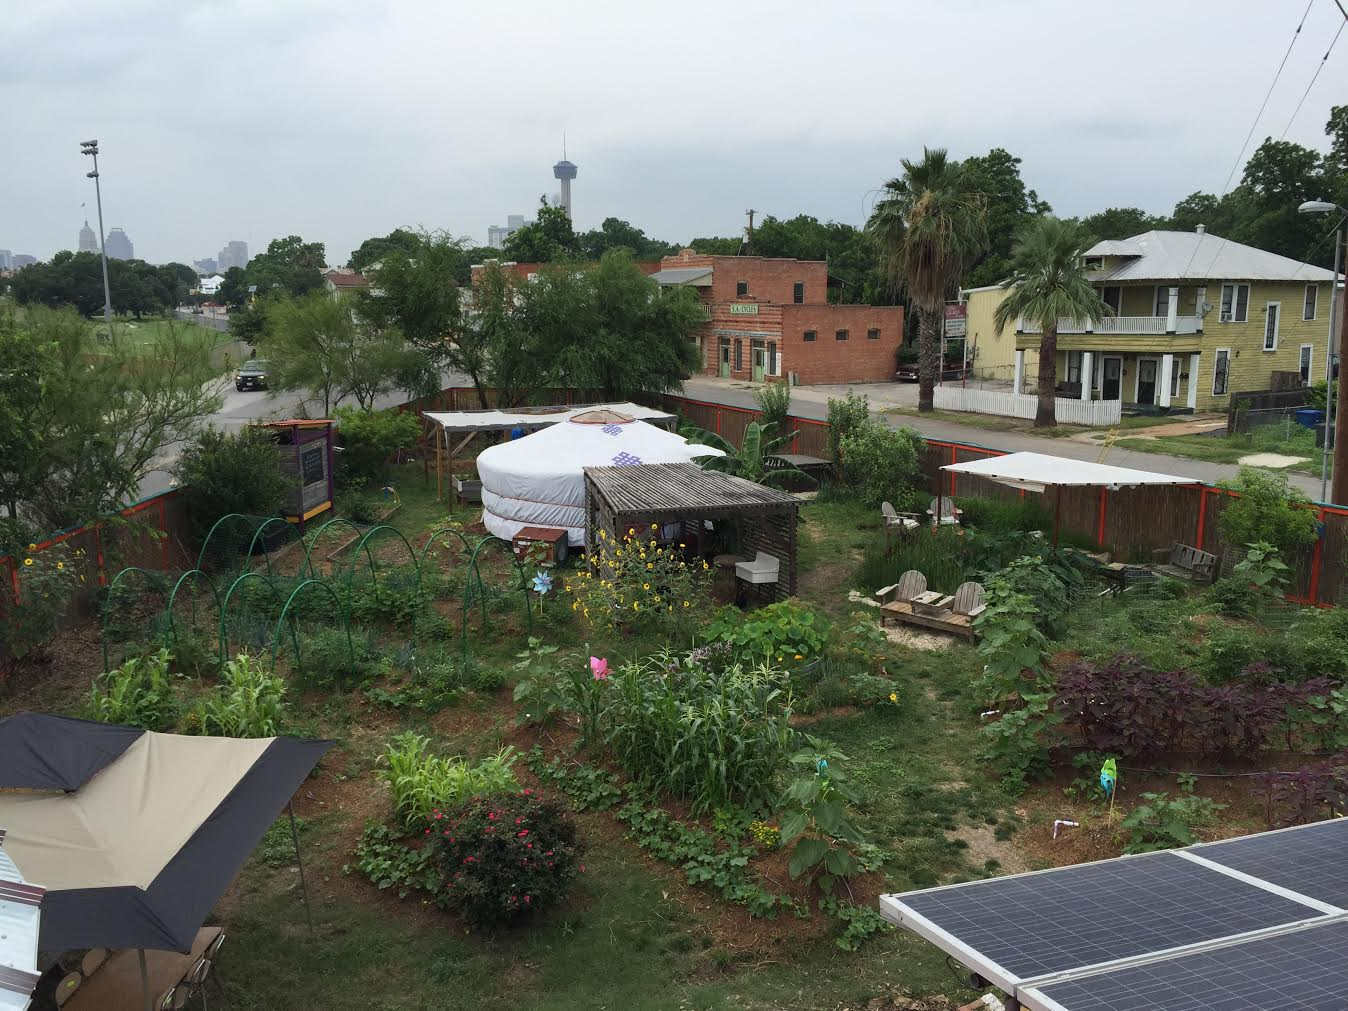 The view from the roof shows the beautiful biodiversity of the growing space in contrast to the gray background of the city.